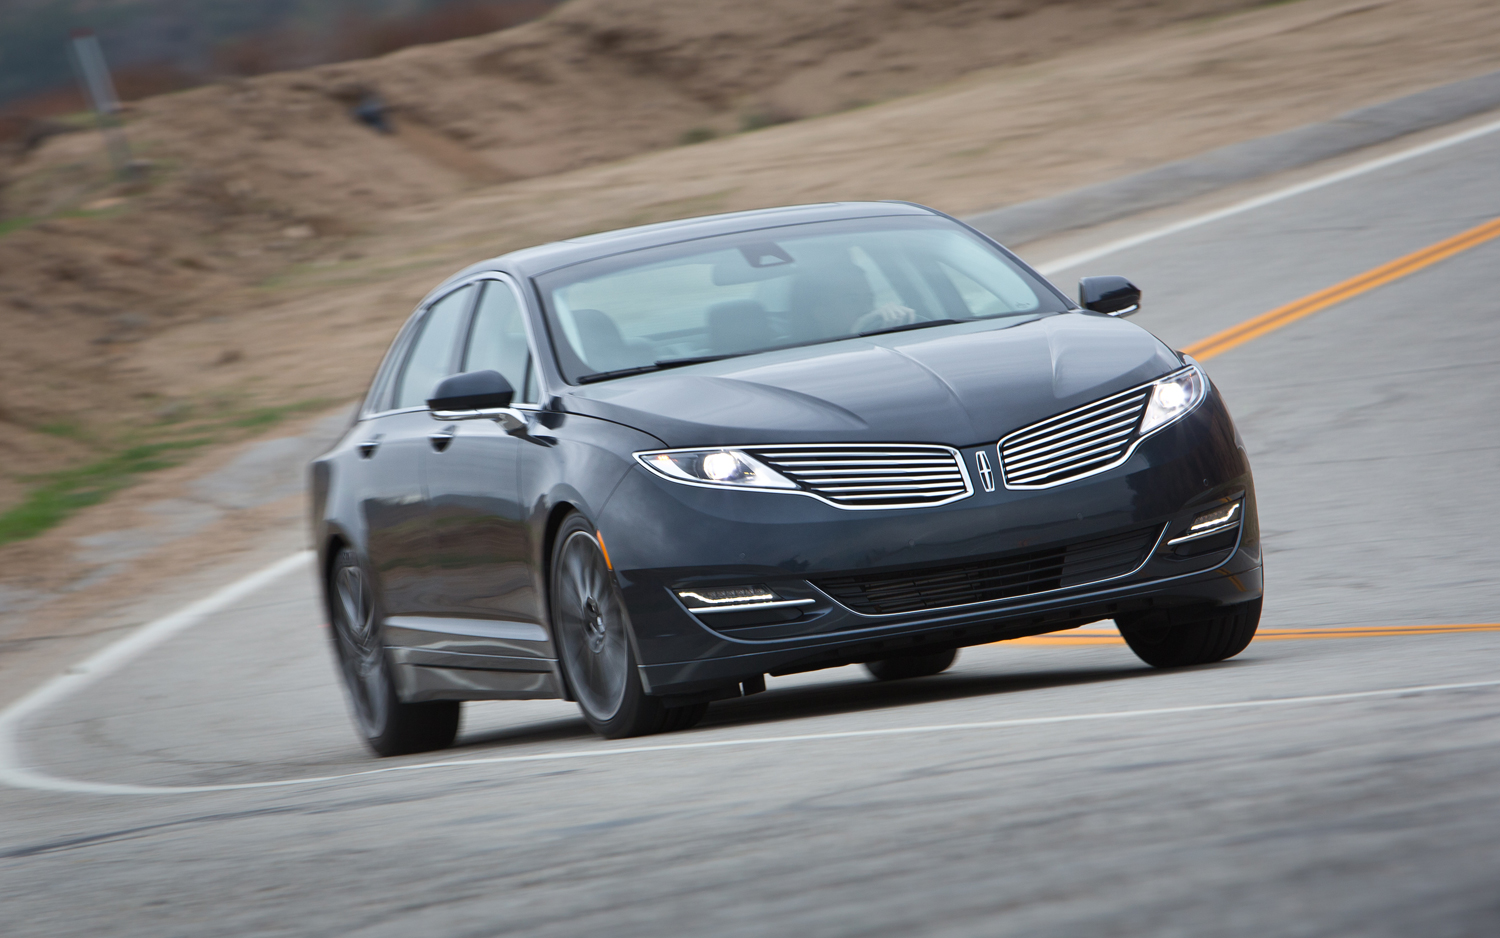 2013 Lincoln Mkz #22